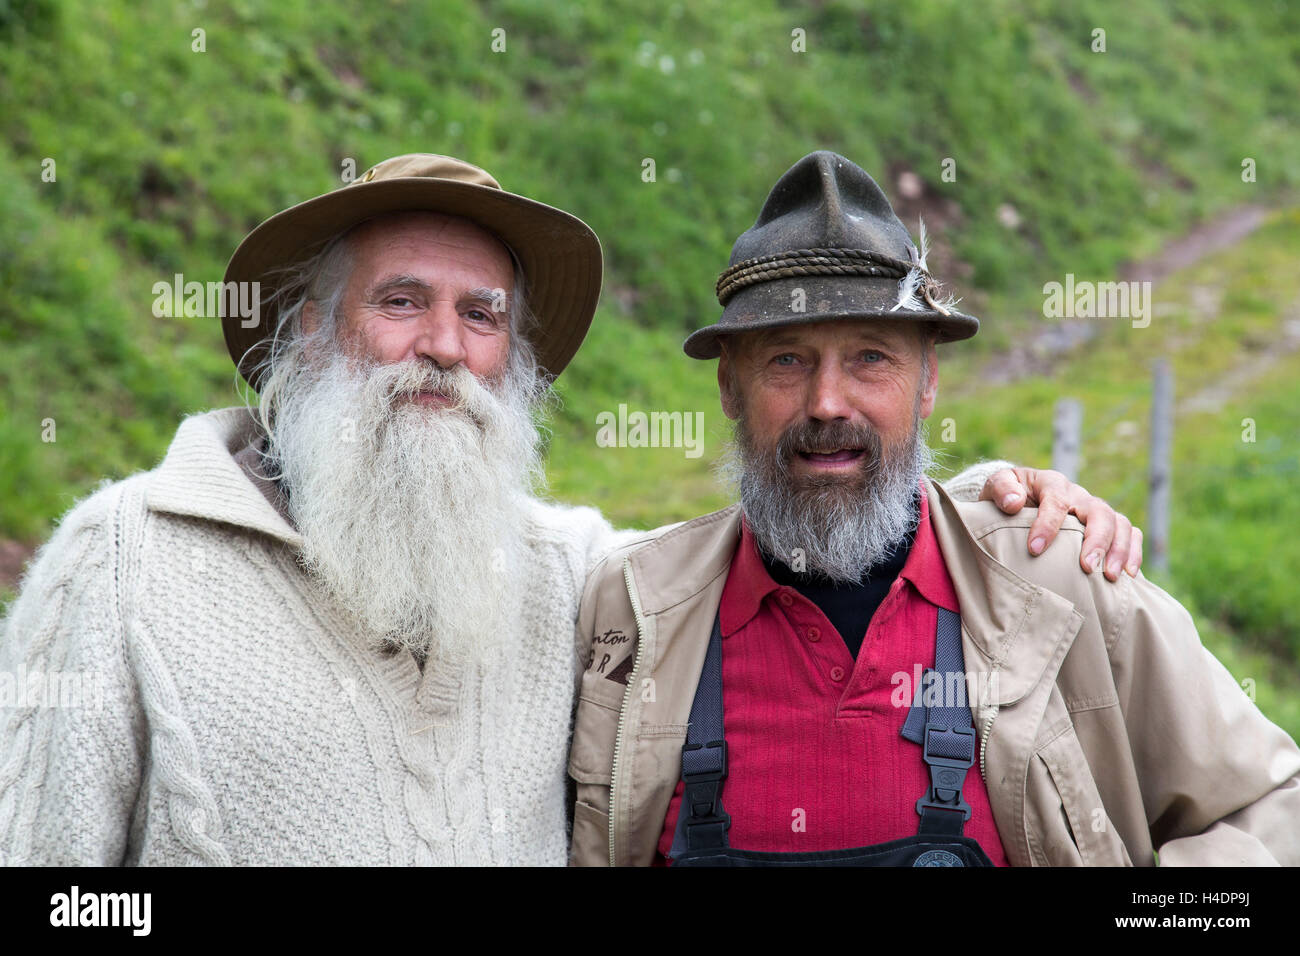 Two older men with beard and care, portrait, - Stock Image